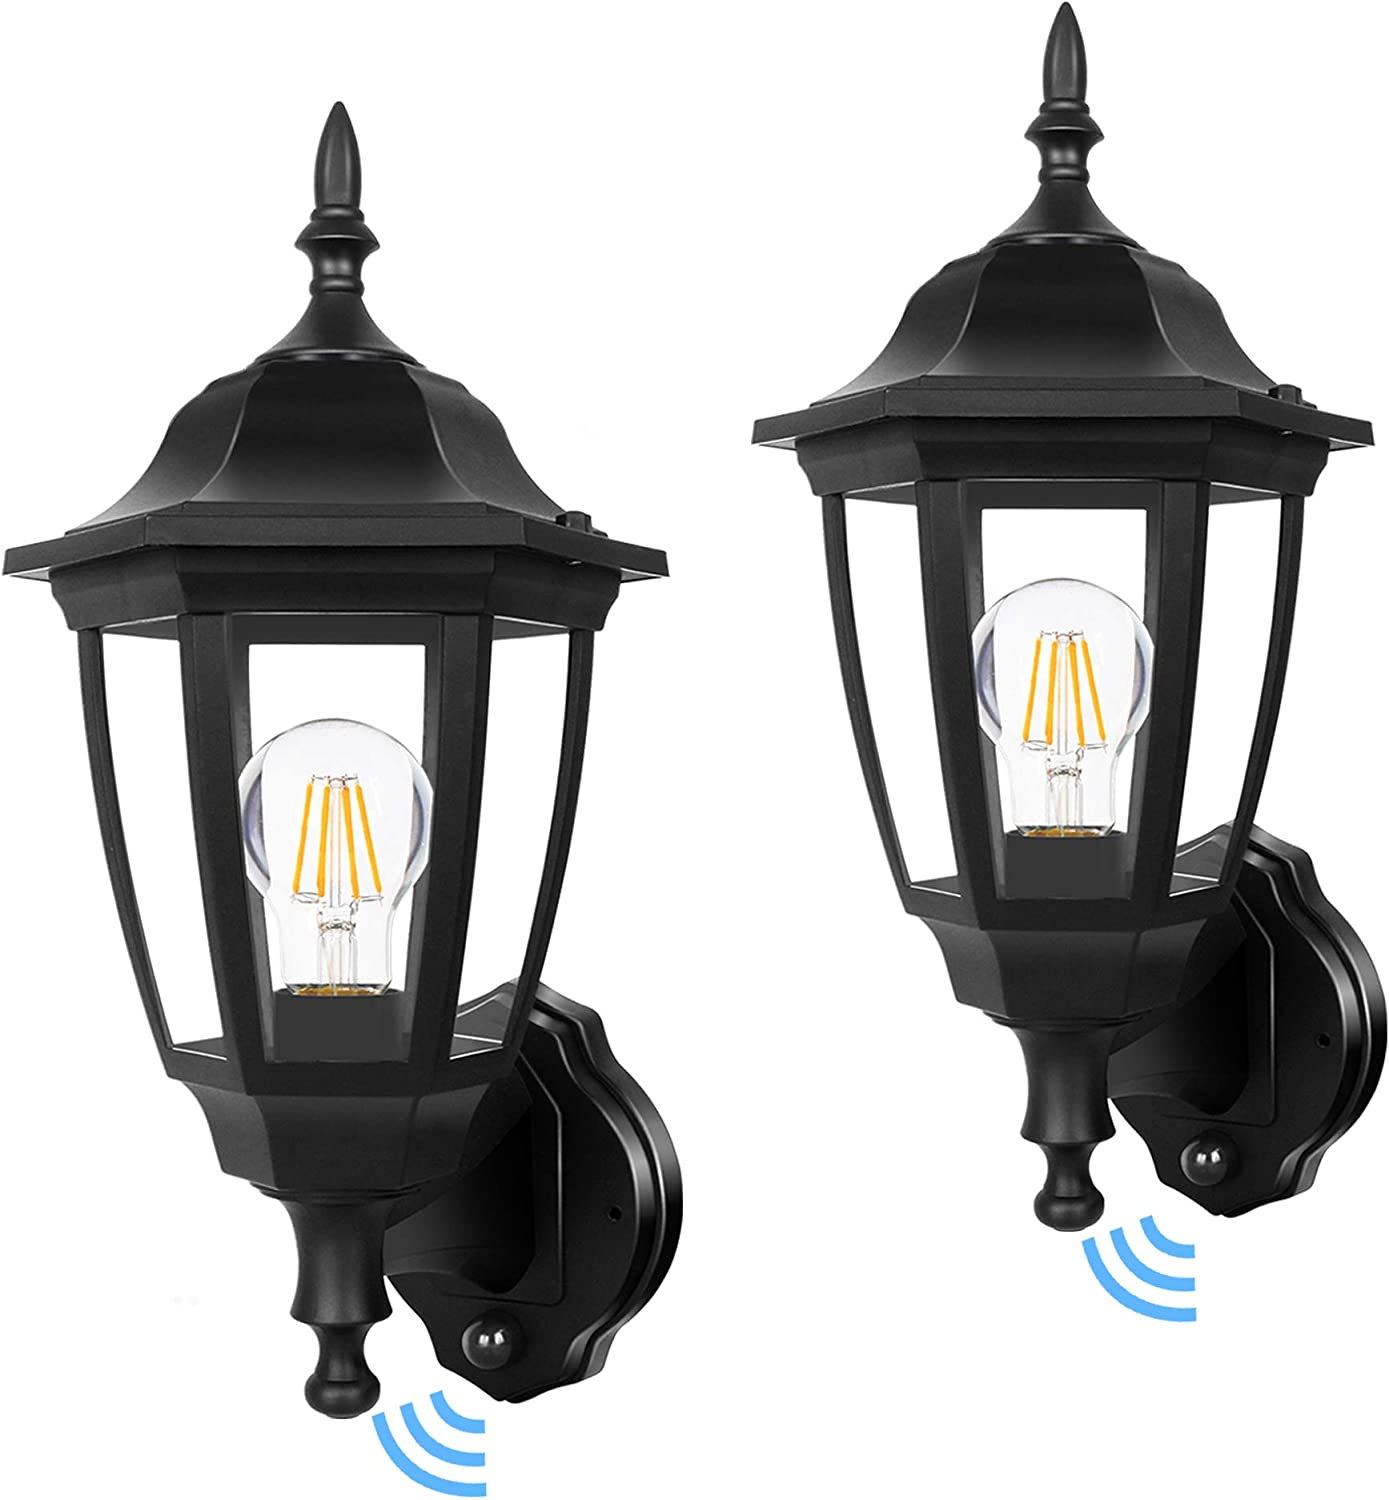 Fudesy Outdoor Dusk To Dawn Led Wall Lantern Plastic Material Anti Corrosion Black Porch Sensor Light With Led Edison Filament Bulb Exterior Mount Lanterns For Porch Garage 2 Pack Fds2542epsb